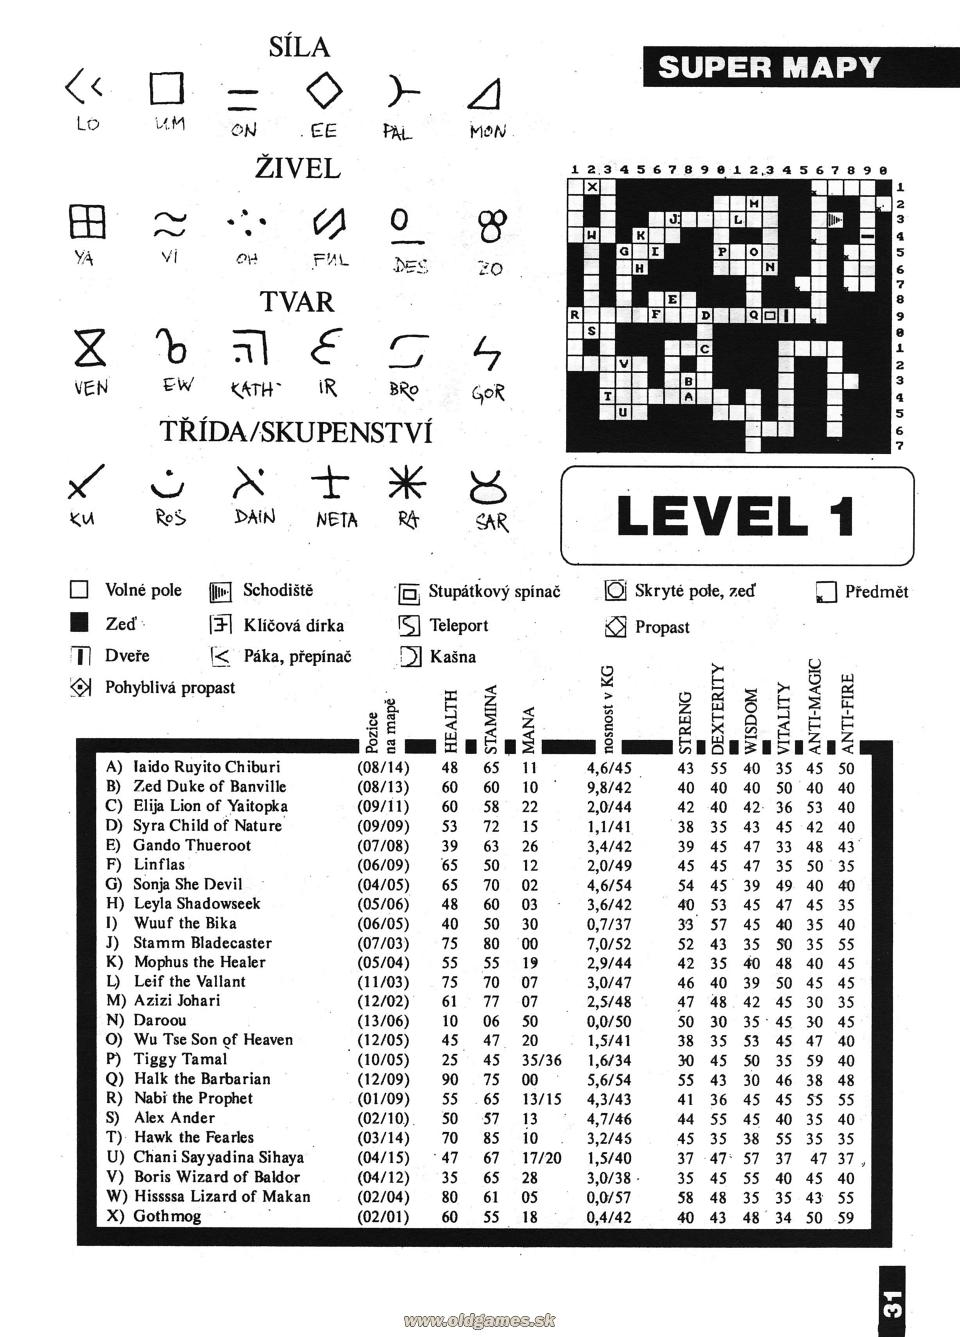 Dungeon Master Hints published in Czech magazine 'Amiga Magazin', Issue #3 July 1991, Page 31